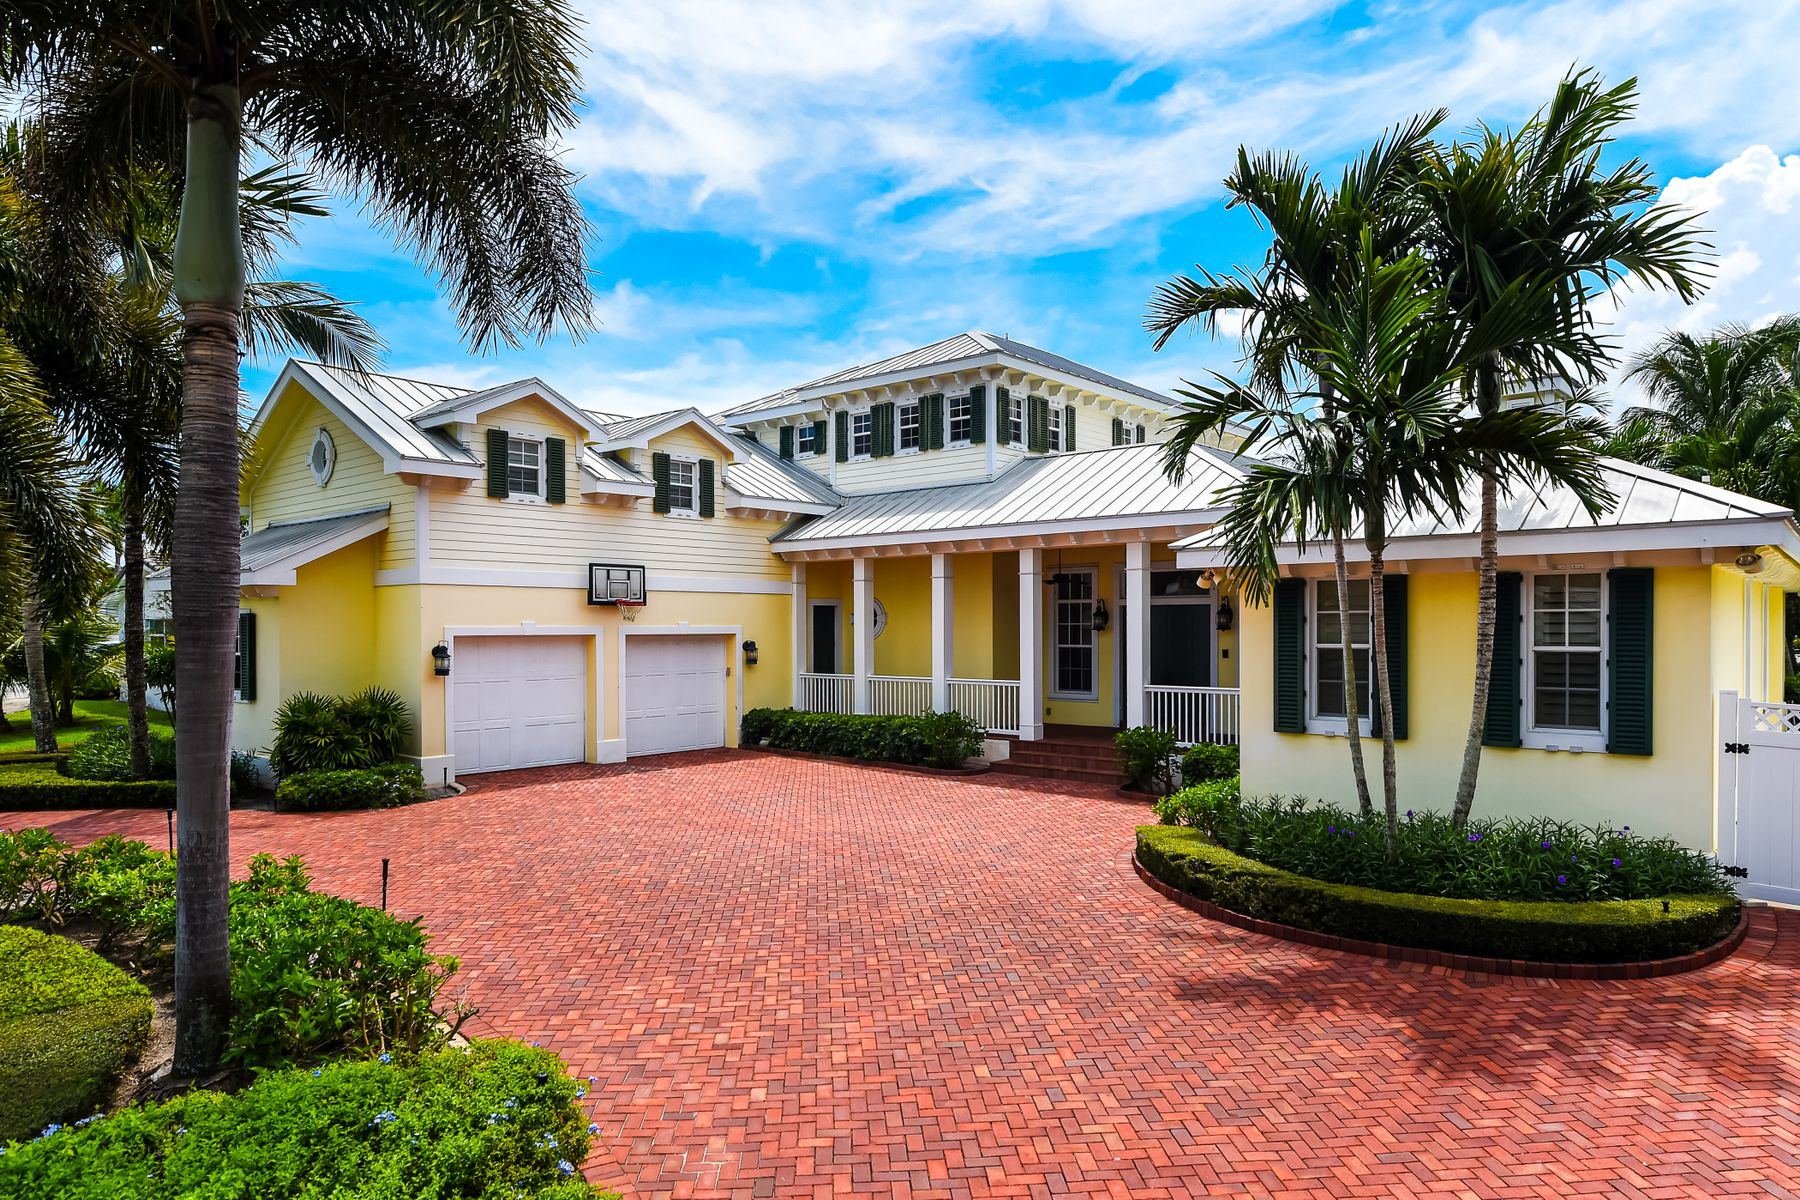 Single Family Homes for Active at North Palm Waterfront 831 Country Club Dr North Palm Beach, Florida 33408 United States